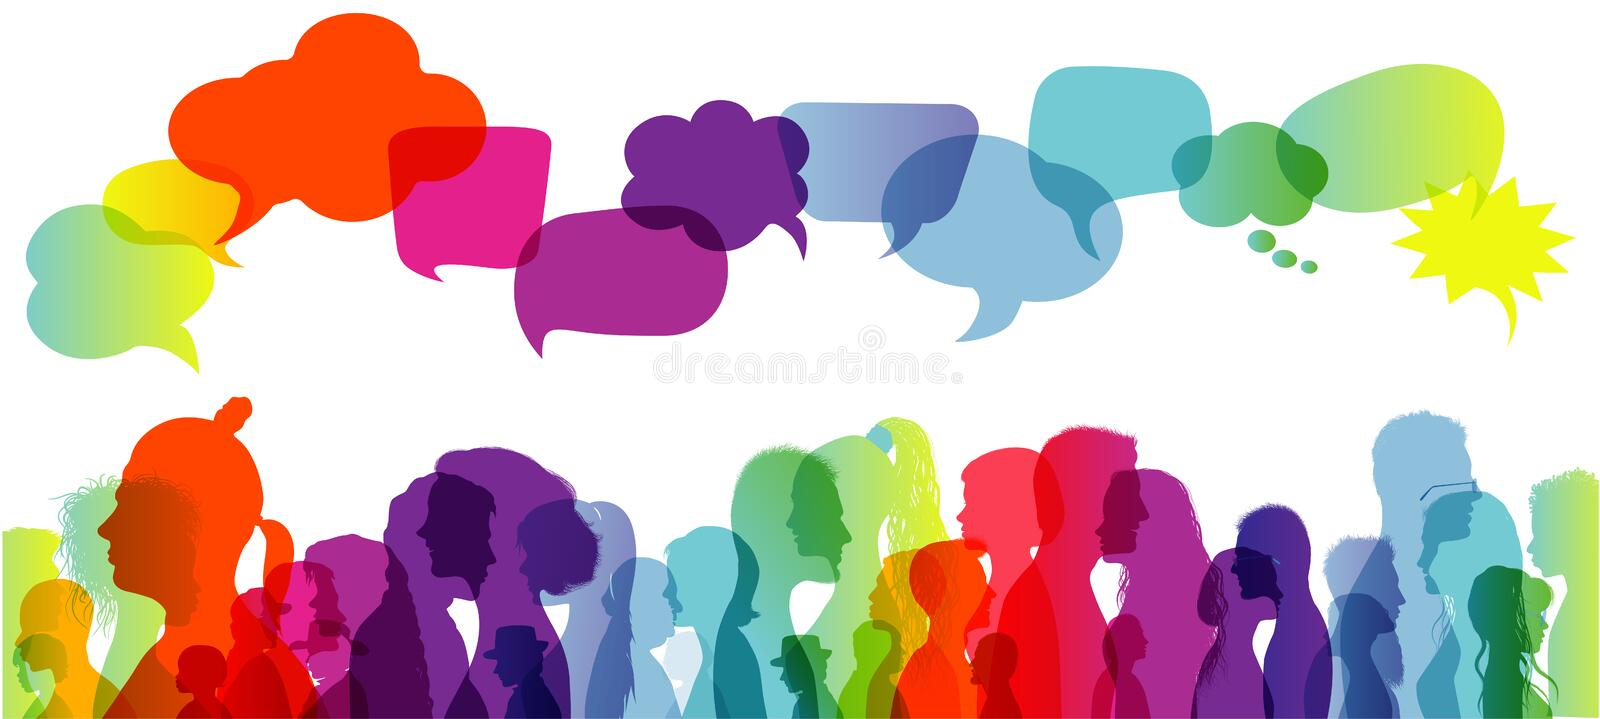 Crowd talking. Speech bubble. Dialogue group of diverse people. Communication between people. Silhouette profiles. Rainbow colours. Possible use in the field of stock illustration